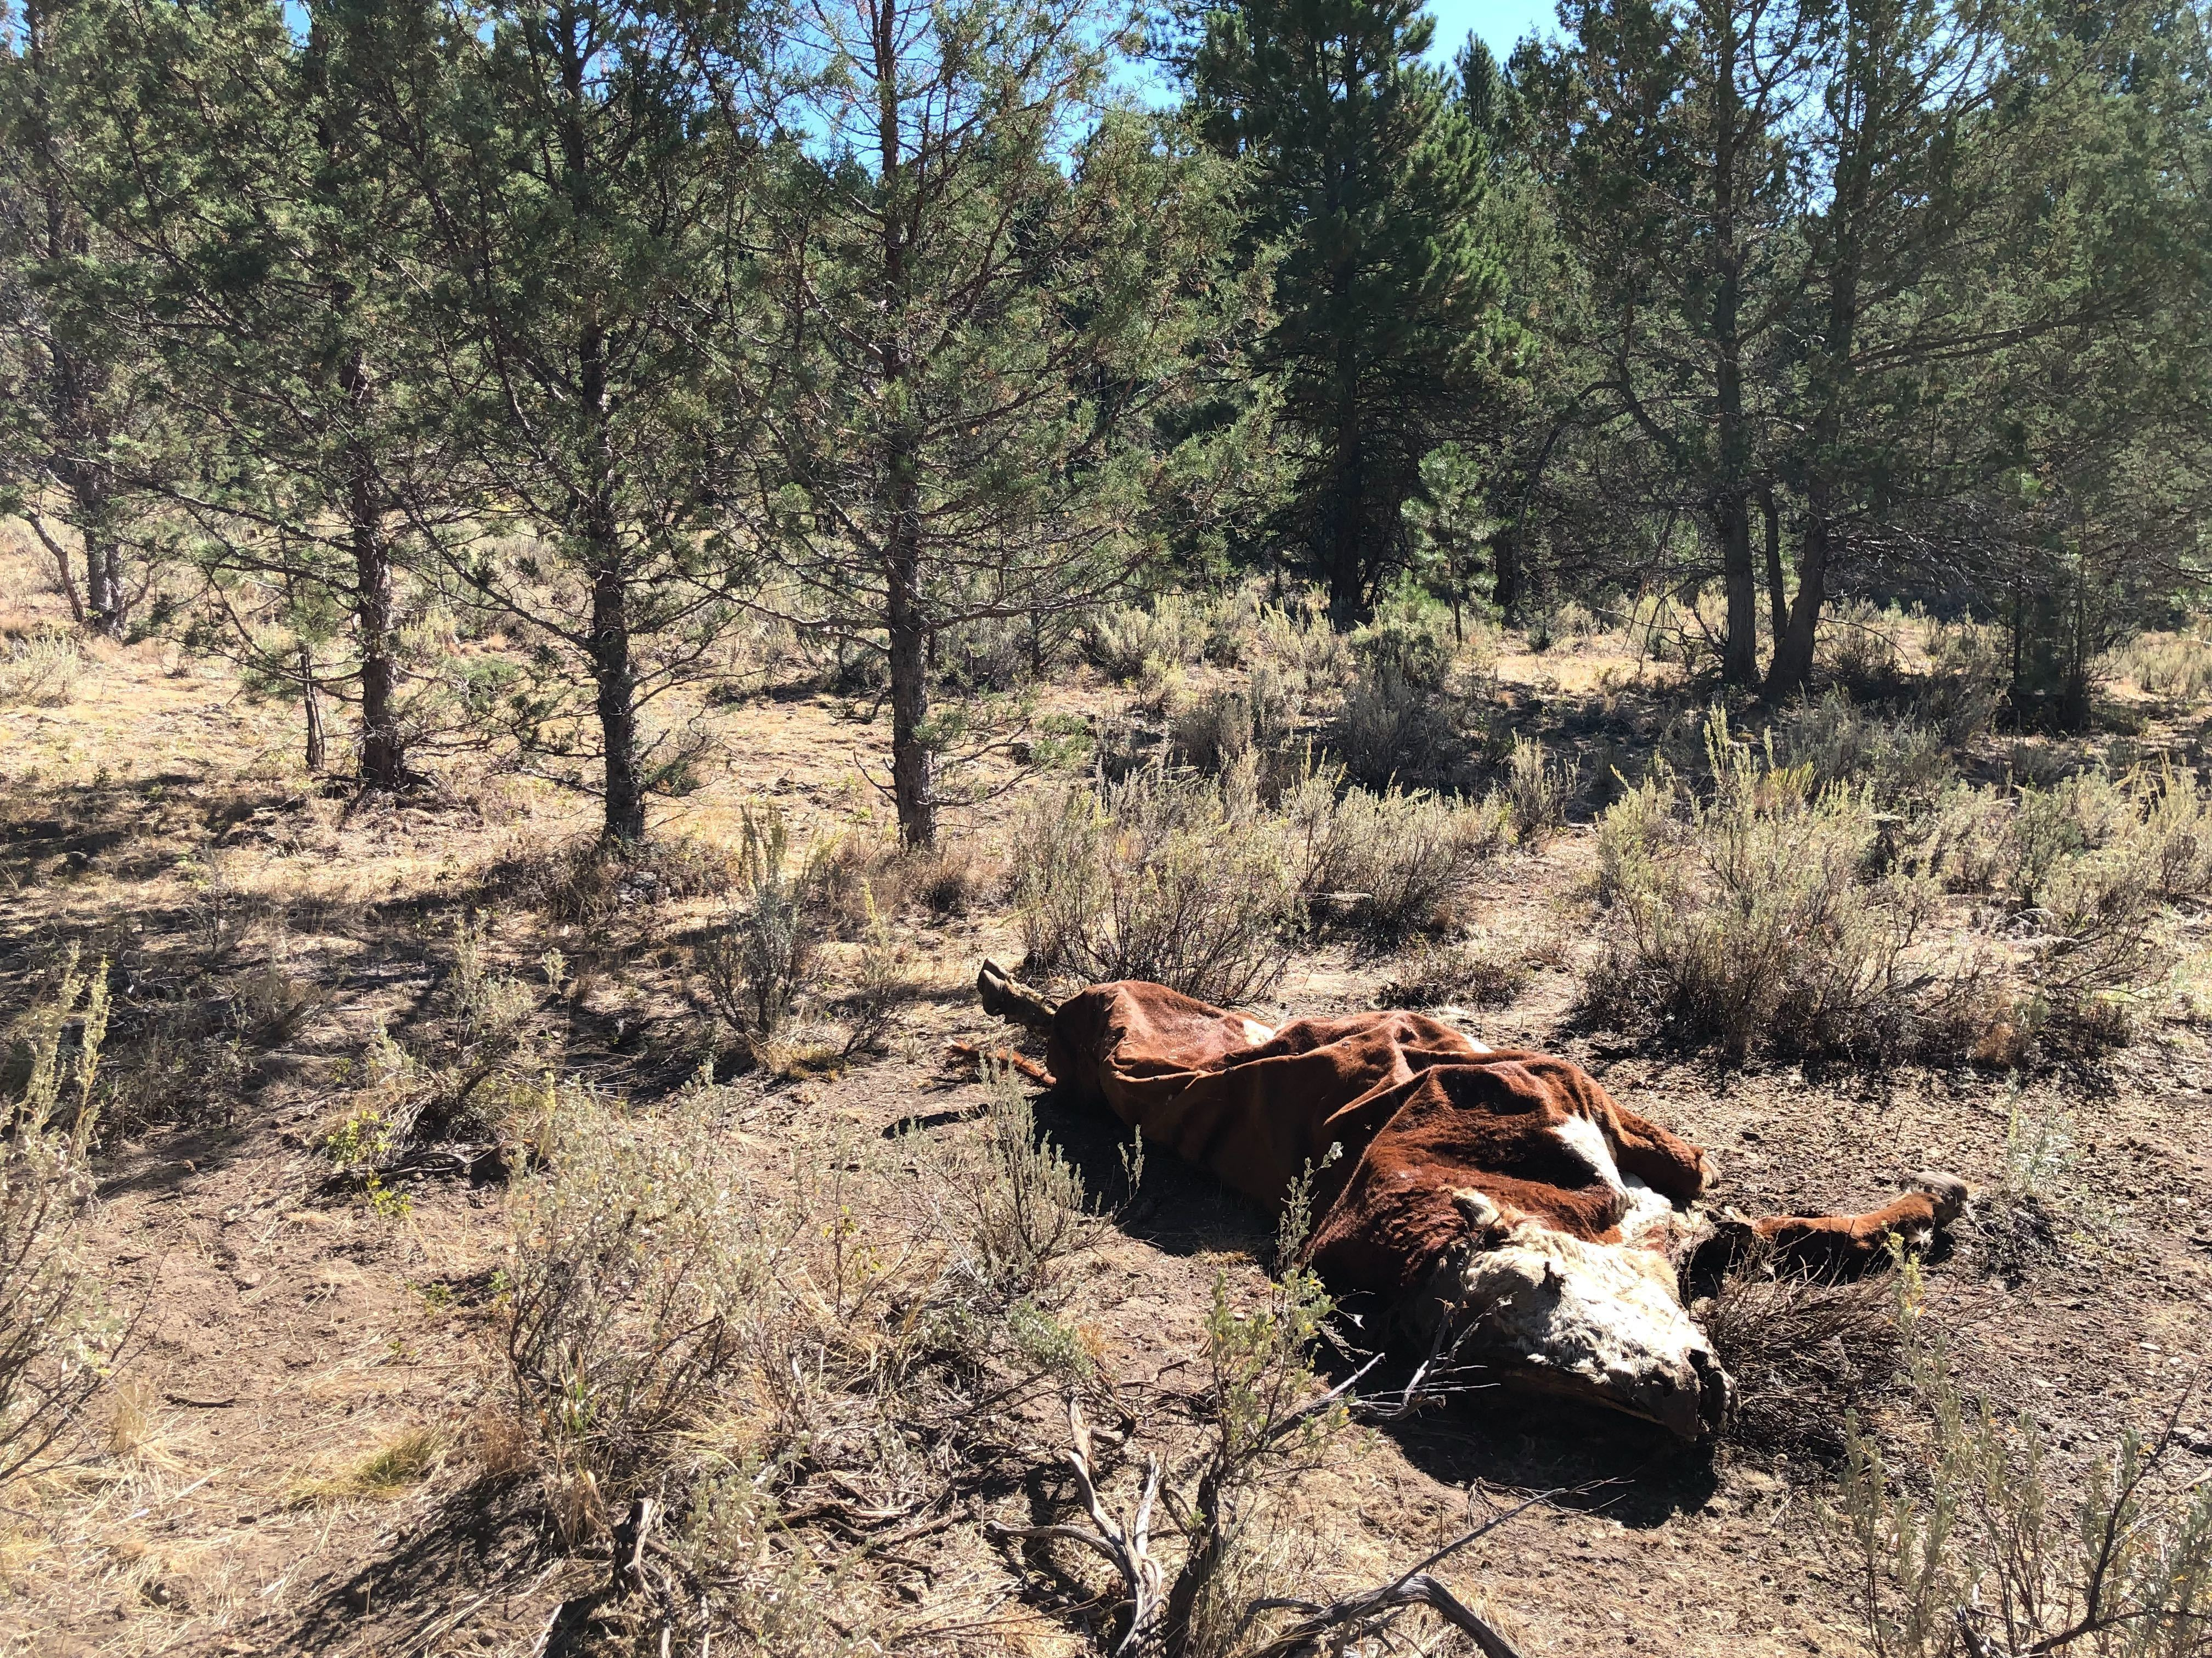 'Not One Drop Of Blood': Cattle Mysteriously Mutilated In Oregon